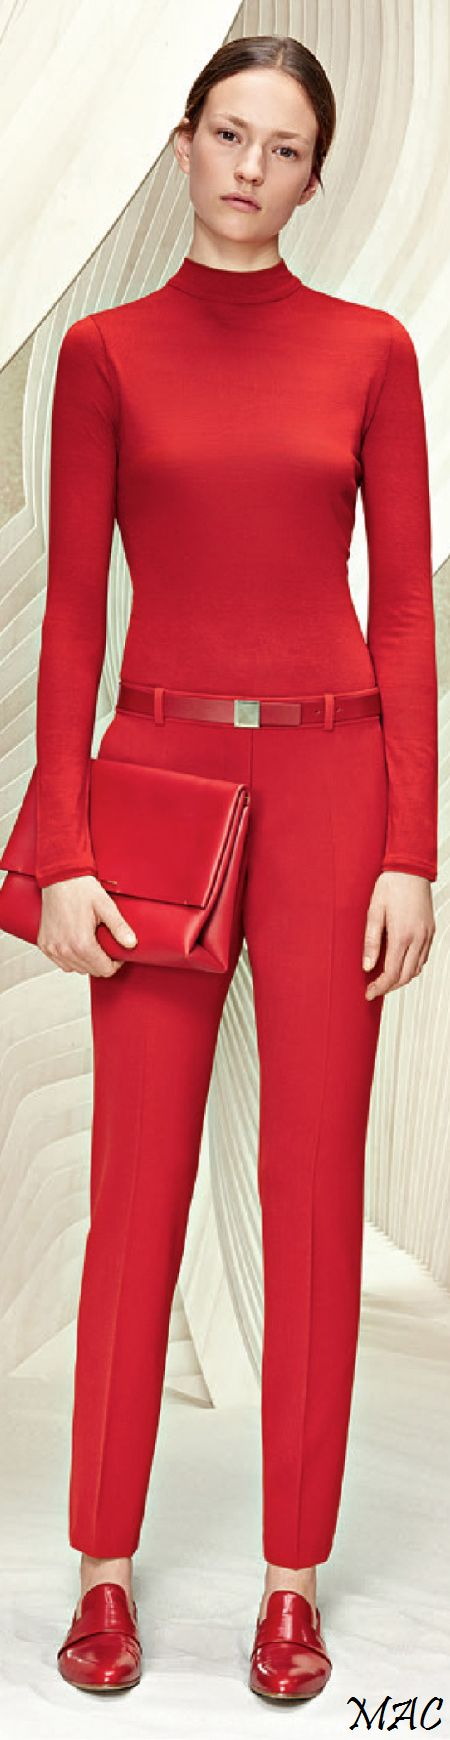 Unique Red Pants Outfit Ideas For Women Purchase These Trousers At